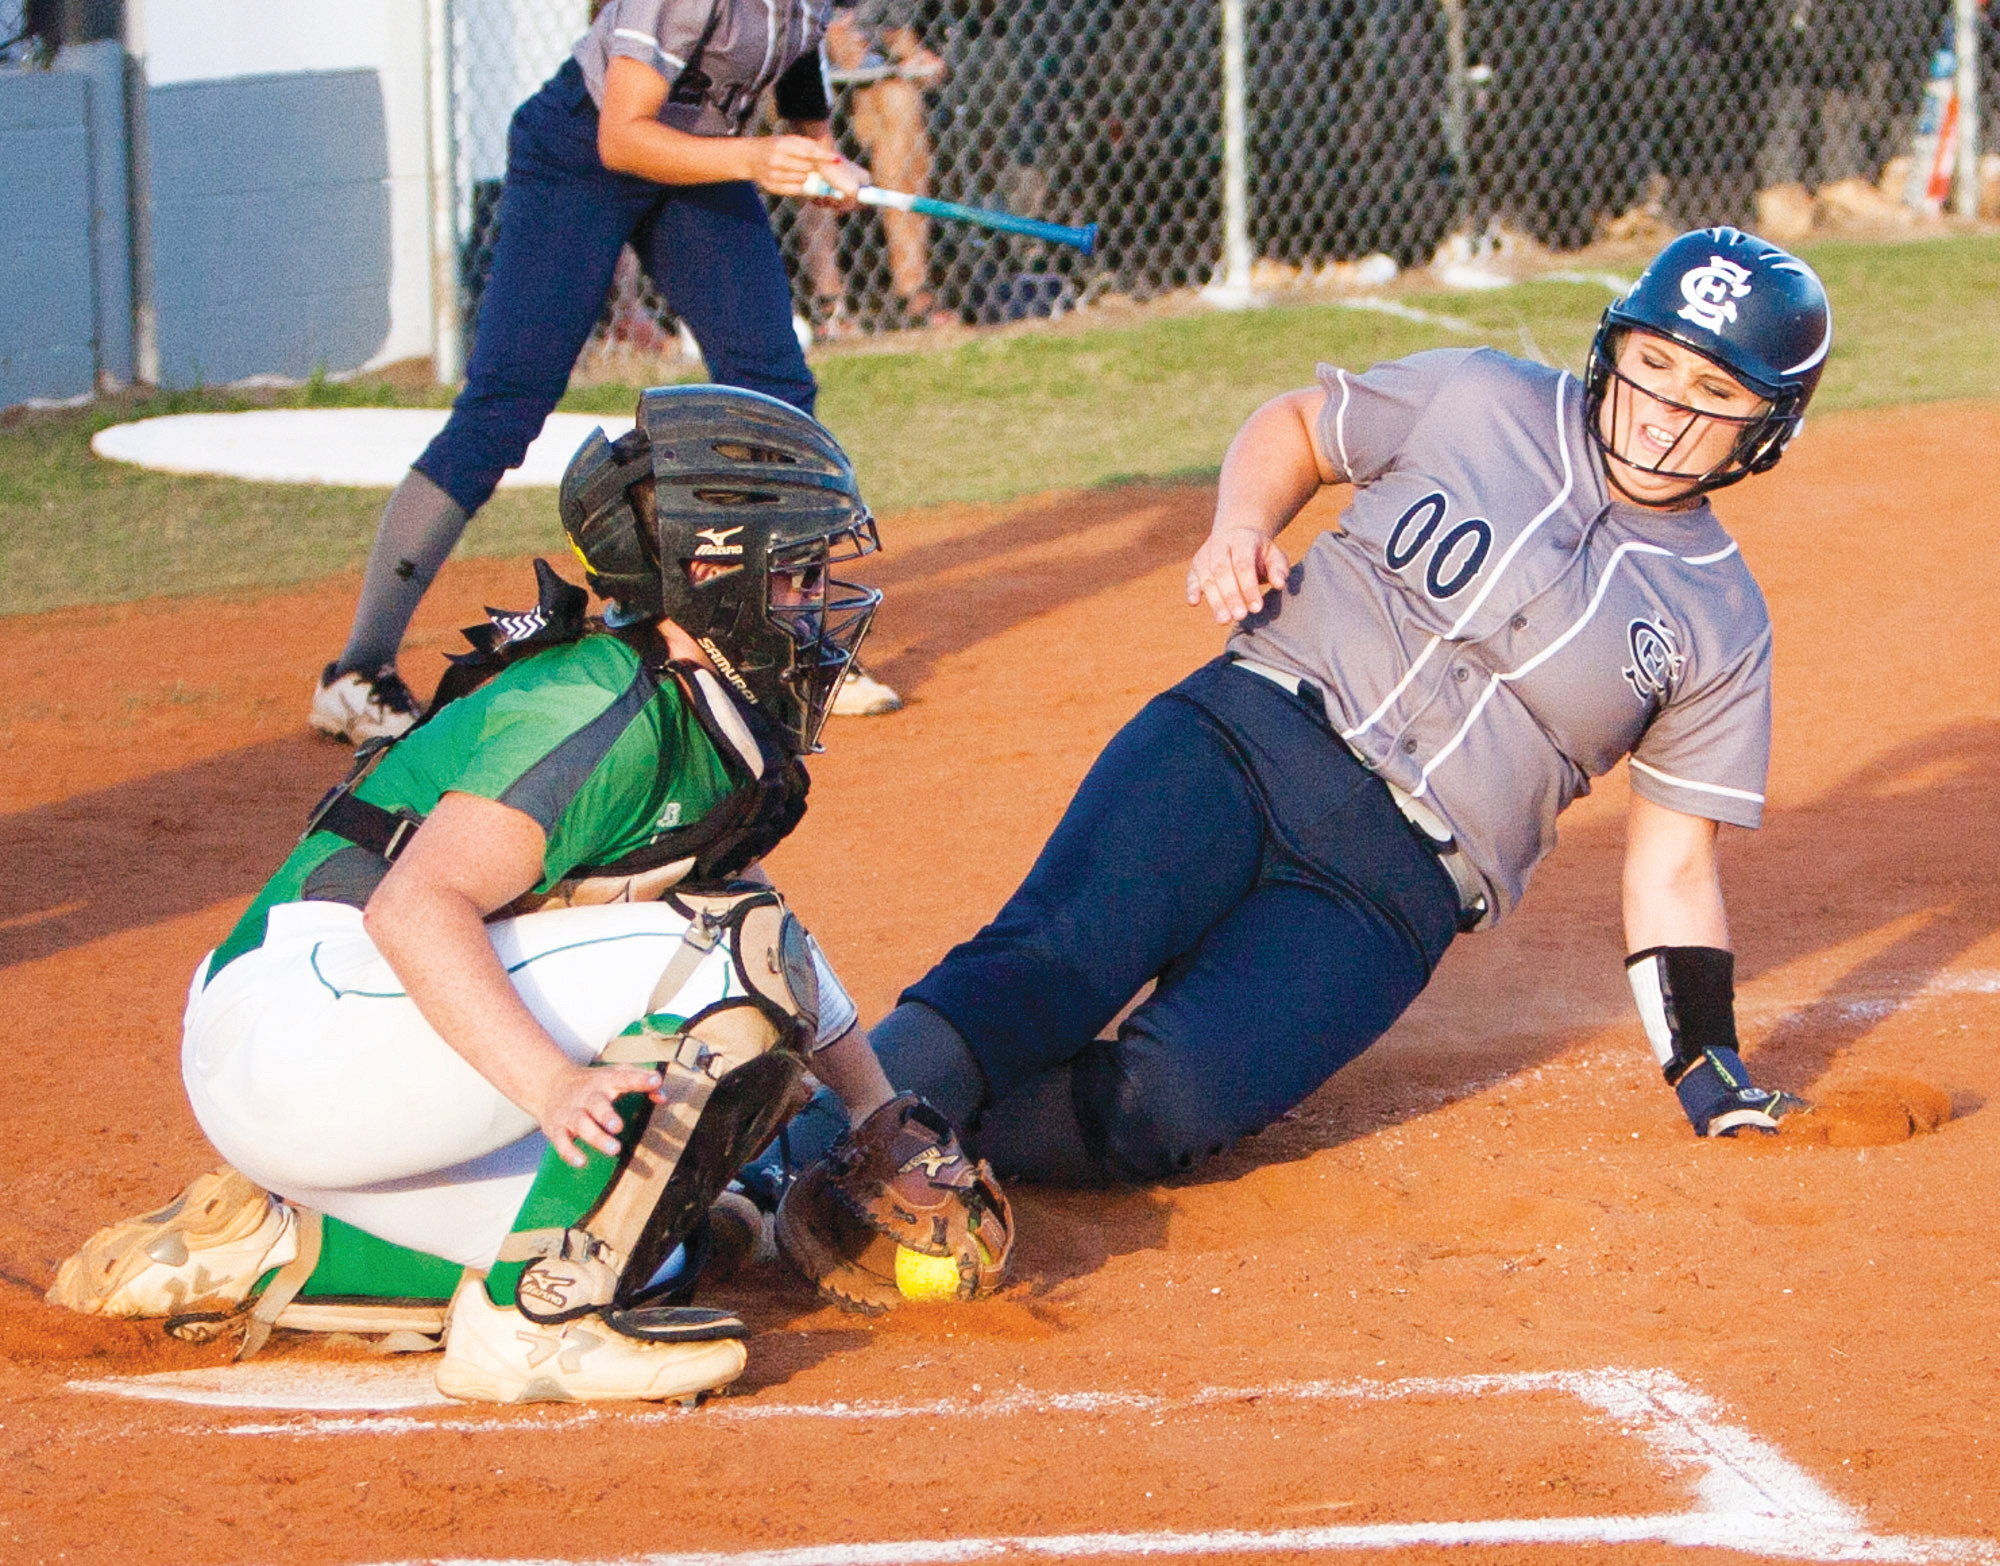 East Clarendon's Mikayla Anderson (00) slides safely into home as Dixie catcher Bailee New takes the throw in the Lady Wolverines' 4-3 victory on Wednesday at the EC field in winning it's the 1A state title.